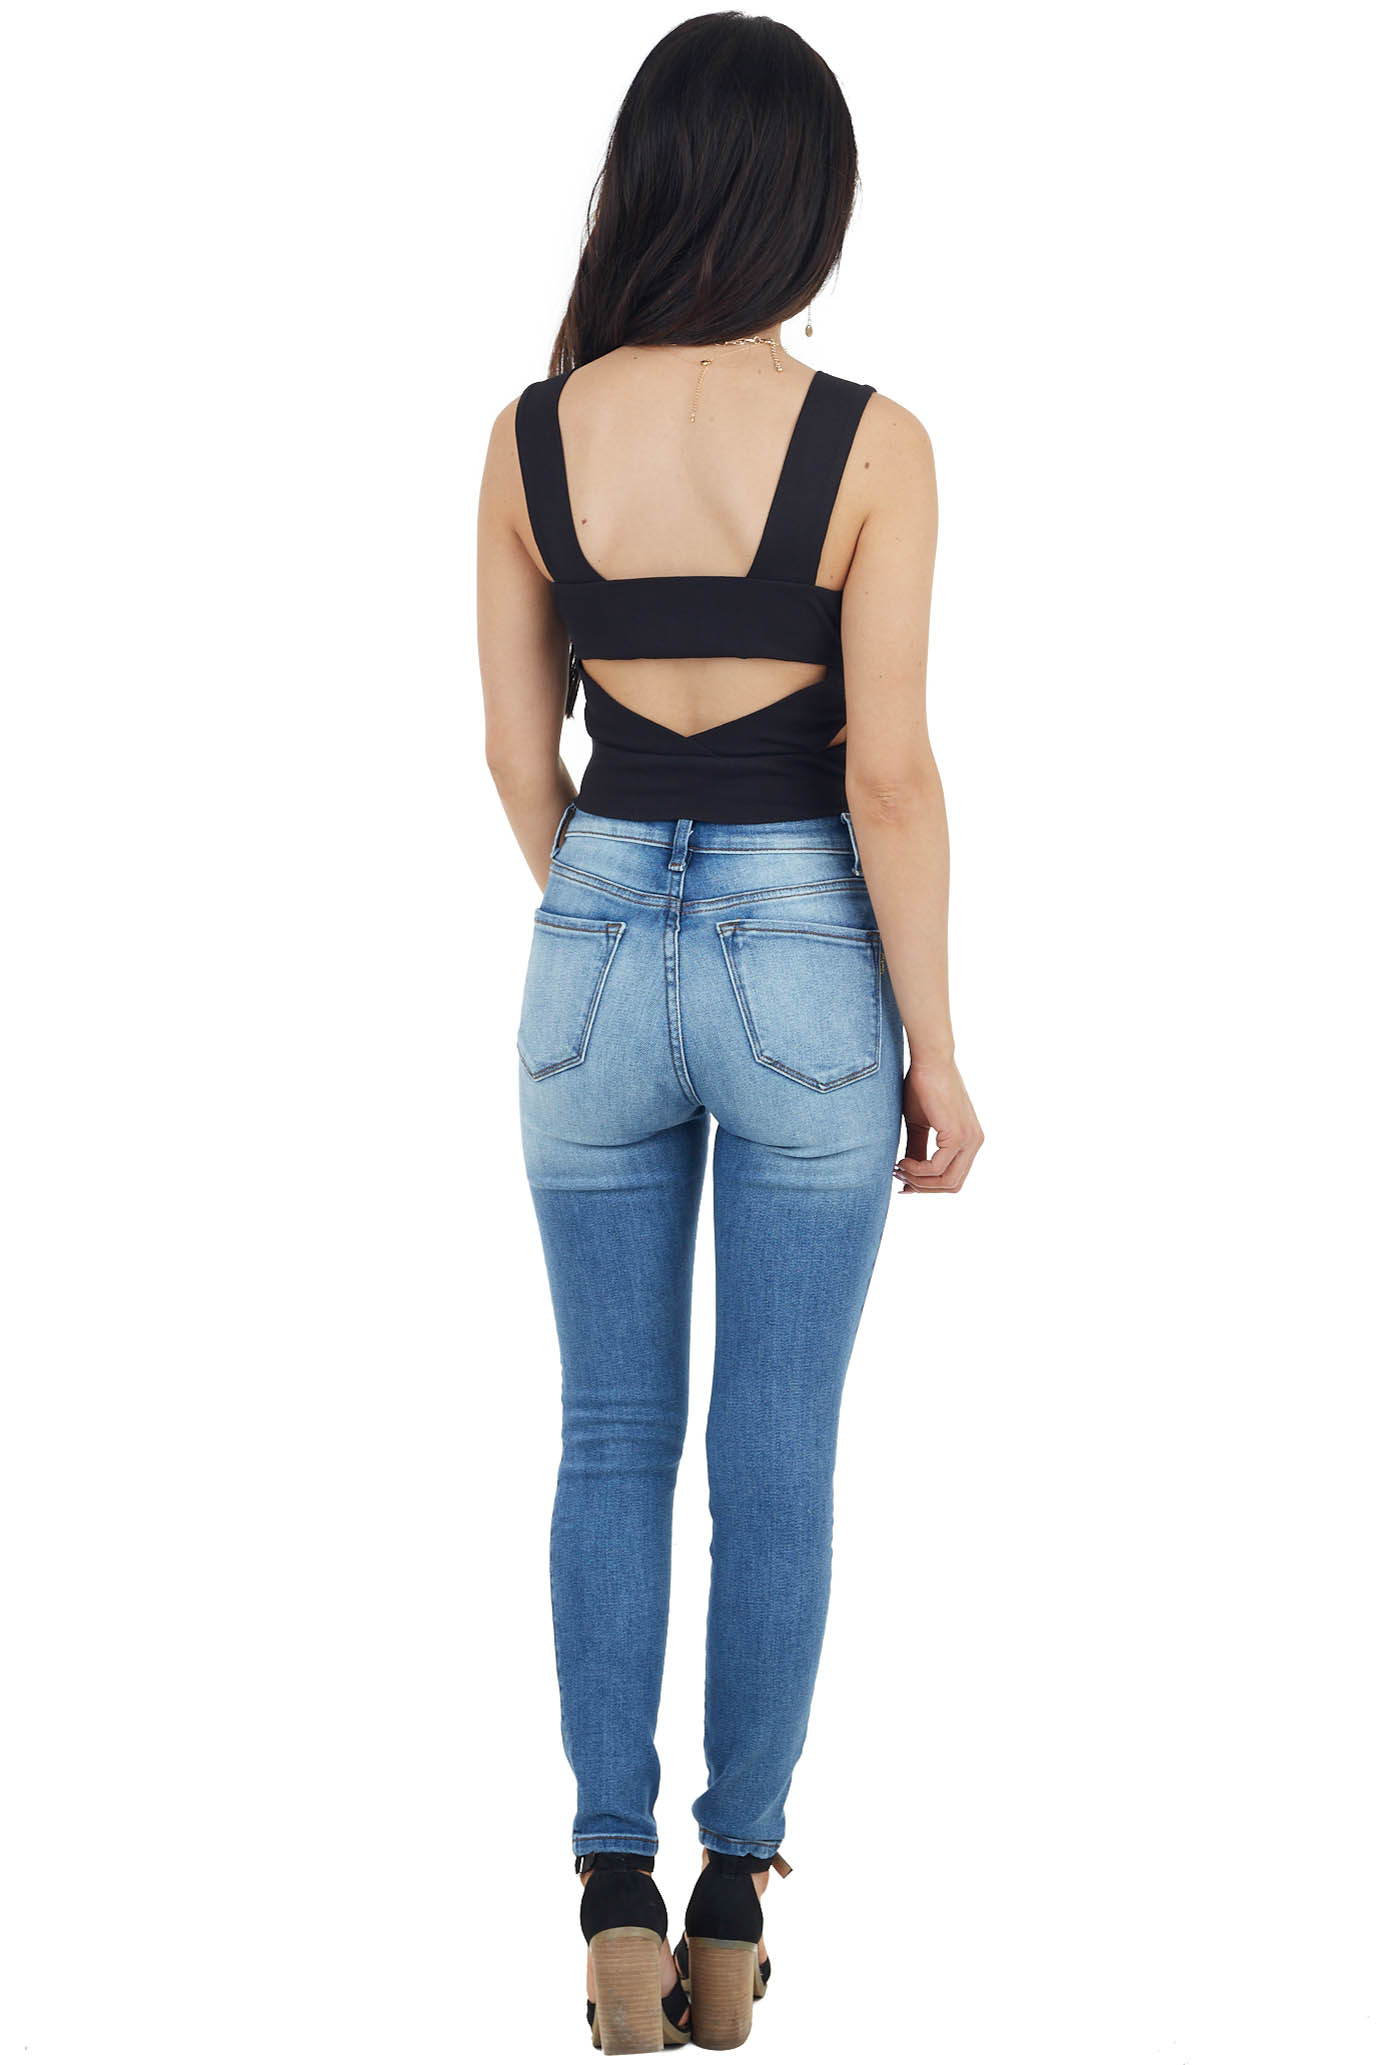 Black Ribbed Knit Sleeveless Crop Top with Back Cut Out